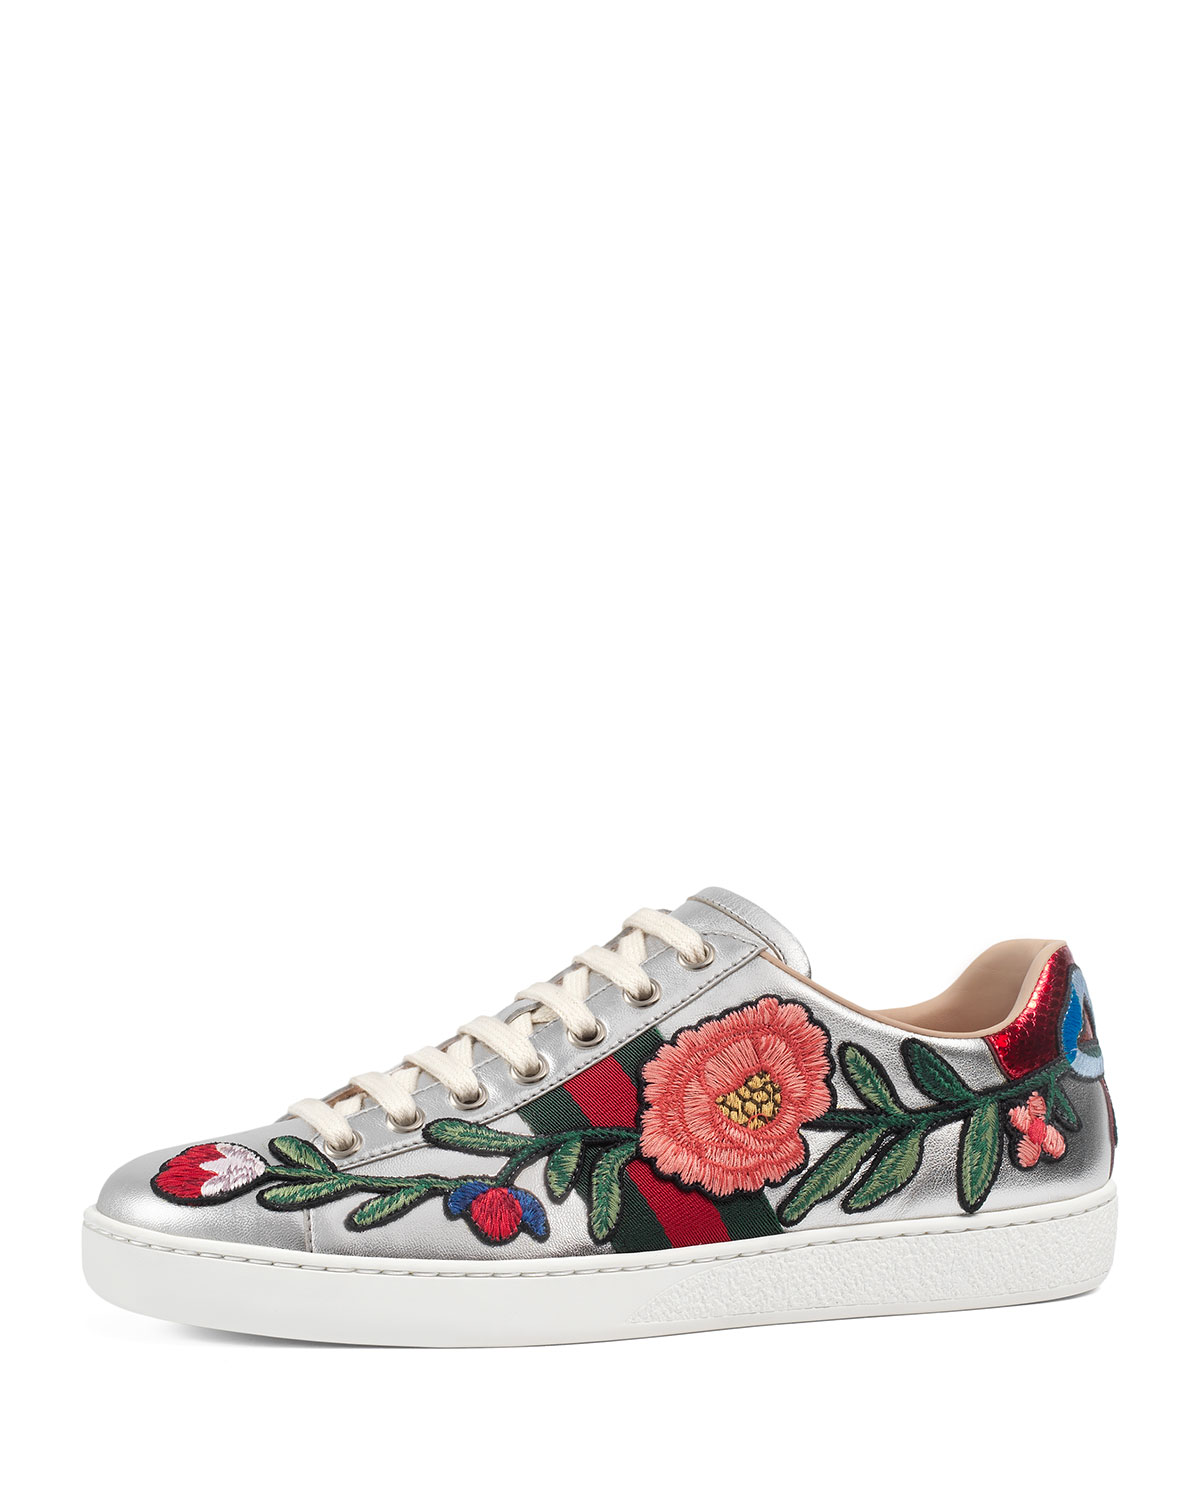 4bab3724bc5 Gucci New Ace Floral Leather Sneaker